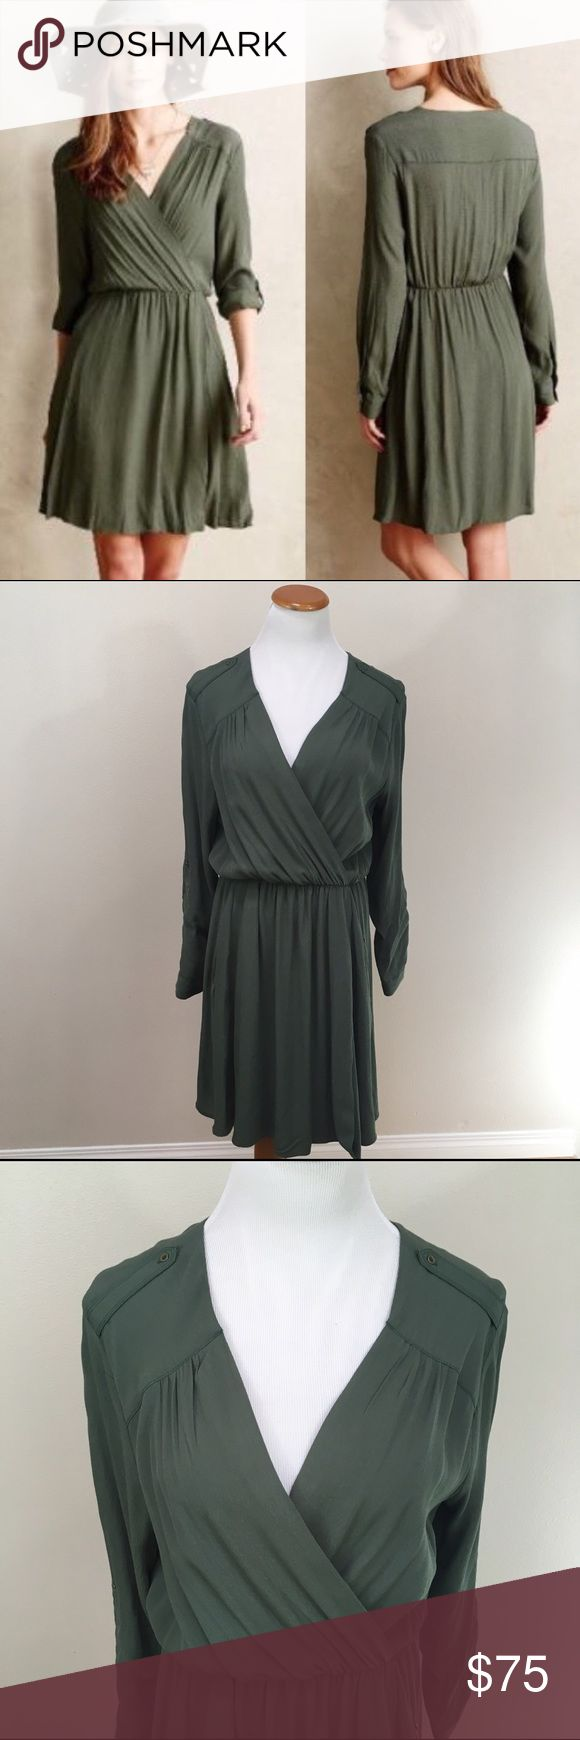 NWT Maeve Anthro Lene Green Safari Shirt Dress S NWT Maeve Anthropologie Lene Moss Green Safari Shirt Dress Small. Brand new with tags. Elastic band waist. Zipper pockets. Roll tab sleeves. Clean and comes from smoke free home. Questions welcomed! Anthropologie Dresses Midi